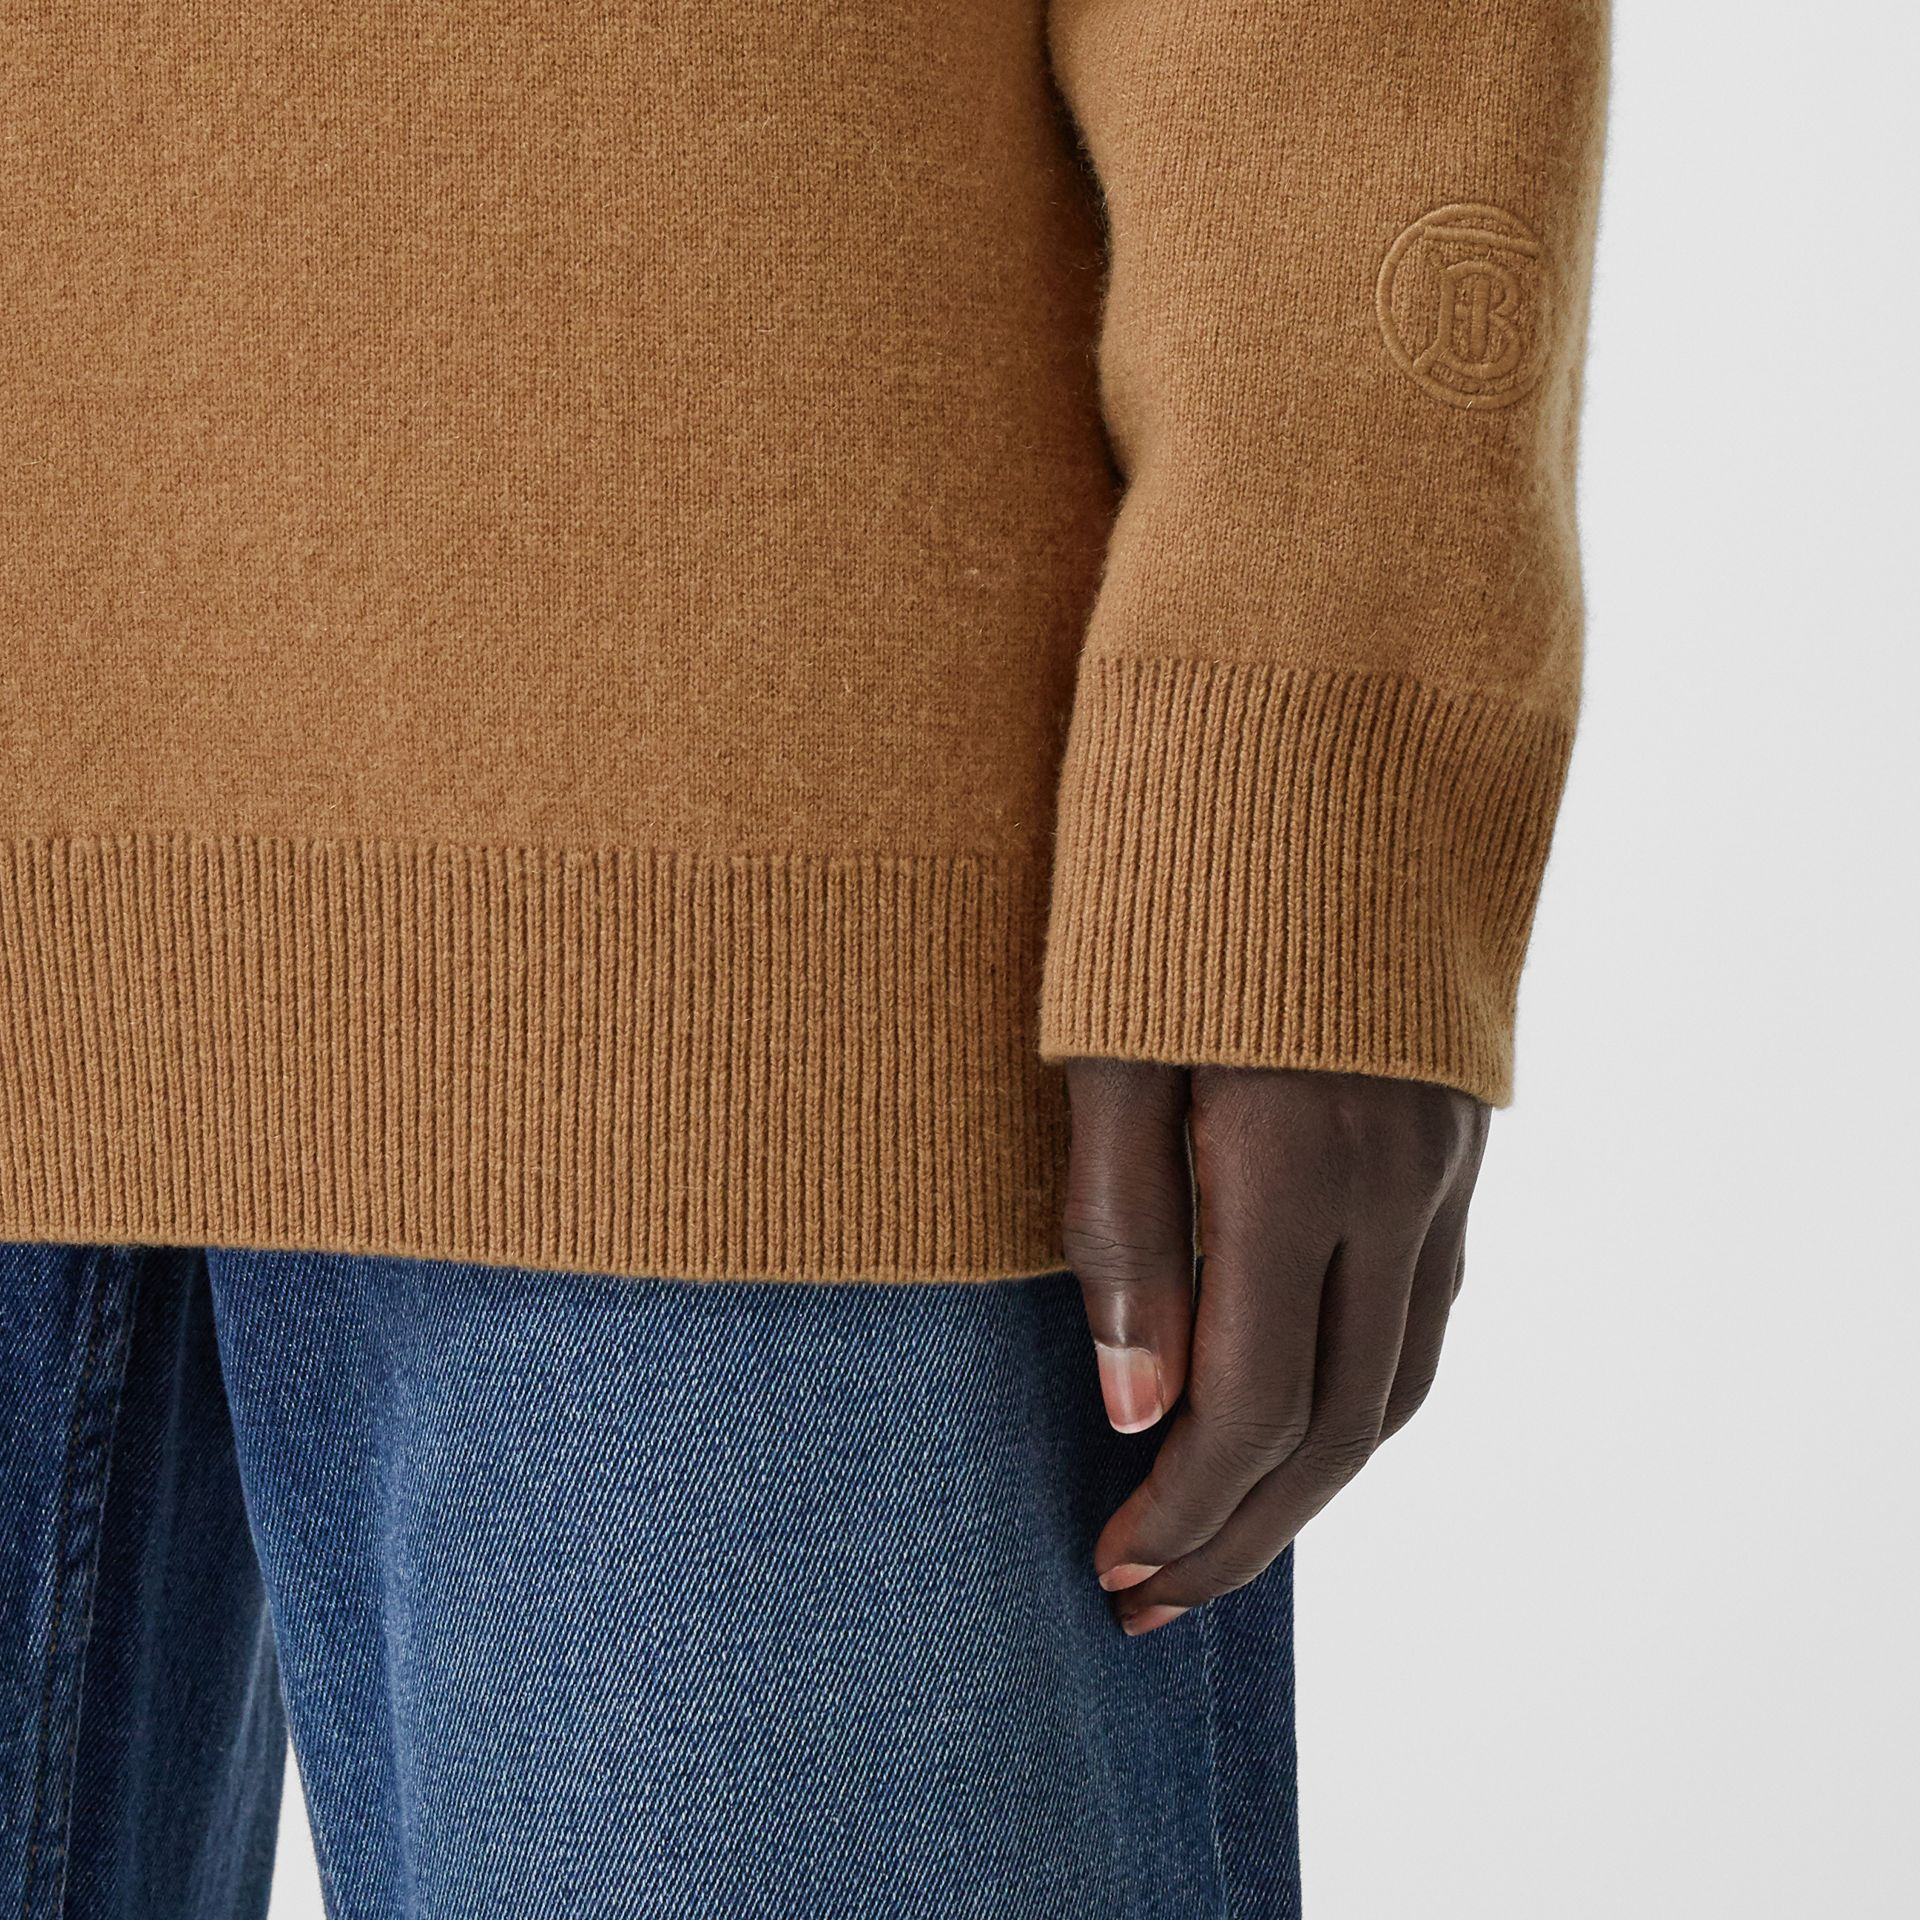 Monogram Motif Cashmere Blend Funnel Neck Sweater in Camel - Women | Burberry - gallery image 4